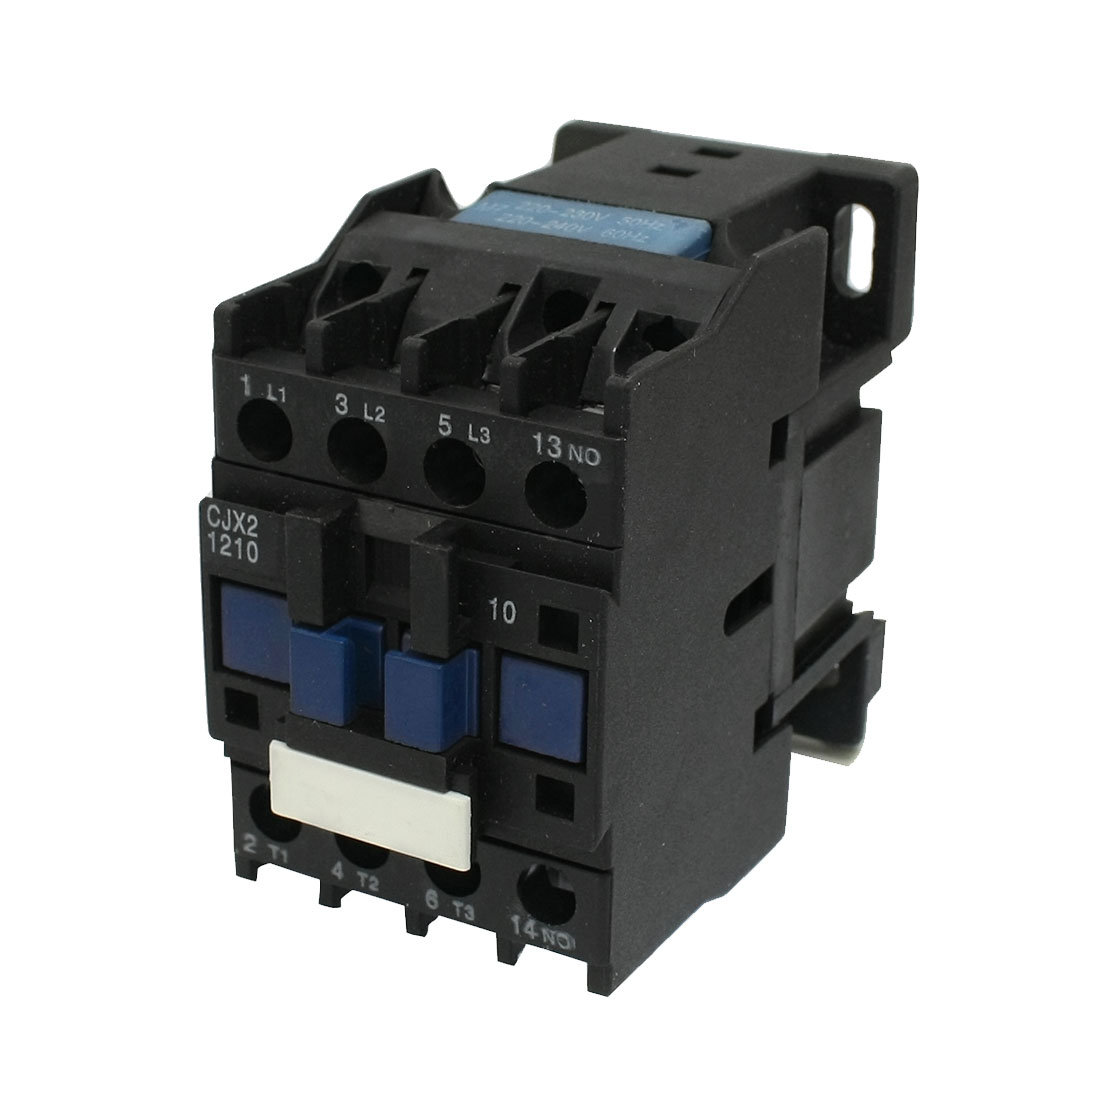 Cjx2 1210 Ac Contactor 25a 3 Poles One No 220 230v 50hz Coil In Phase Wiring Contactors From Home Improvement On Alibaba Group